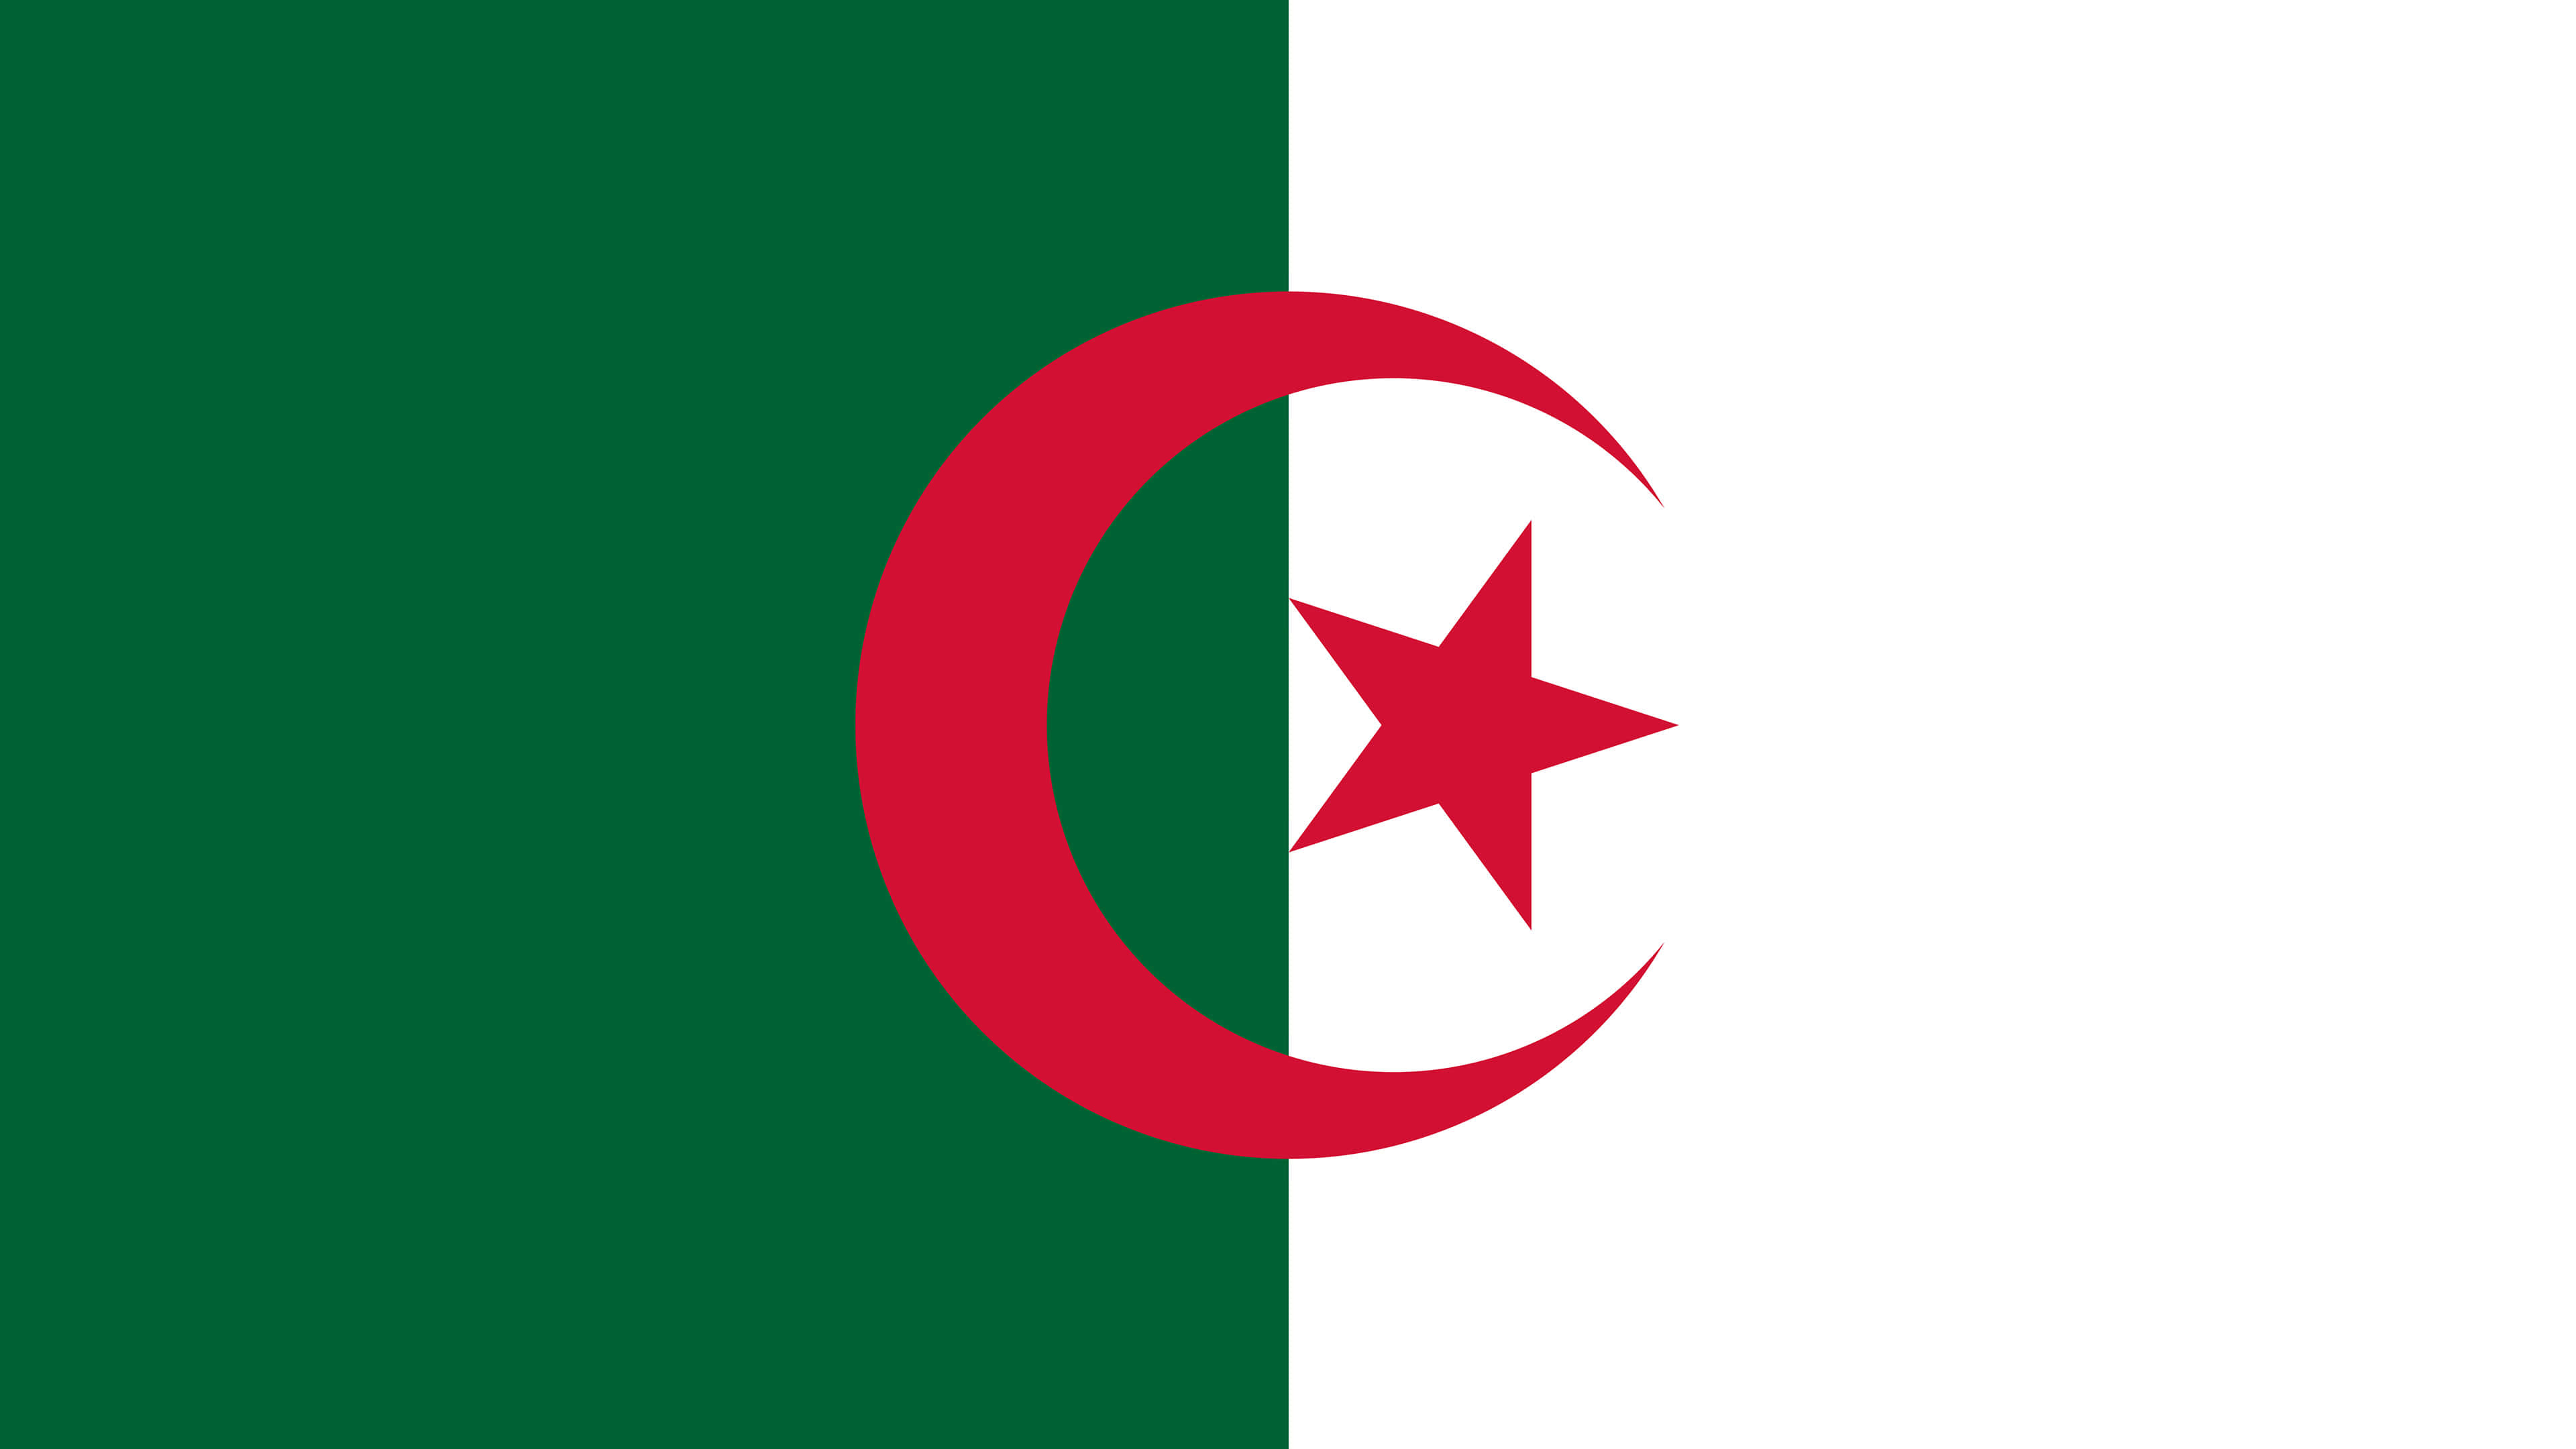 algeria flag uhd 4k wallpaper